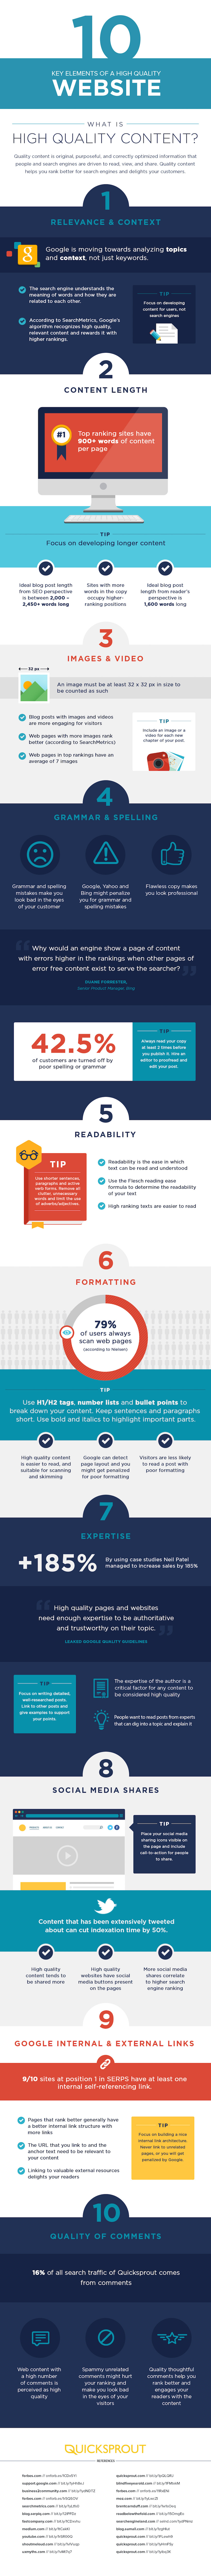 Infographic: Elements Of High-Quality Websites